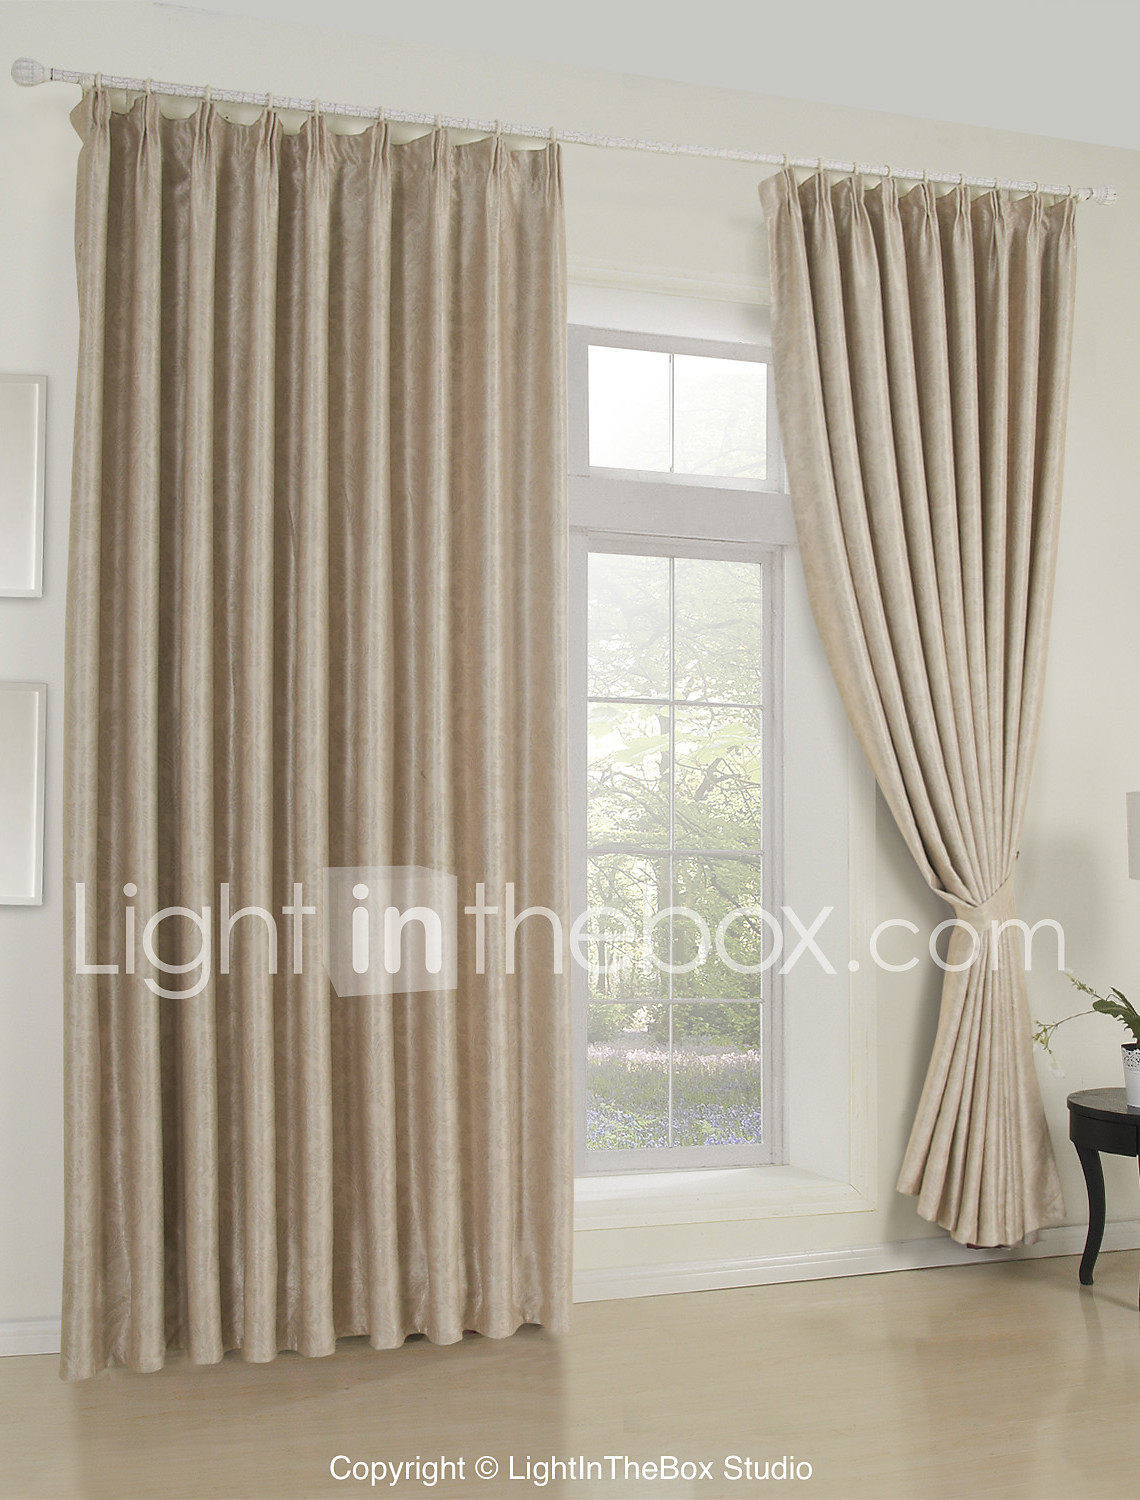 cheap curtains drapes online curtains drapes for 2017 two panels curtain neoclassical solid living room rayon material curtains drapes home decoration for window